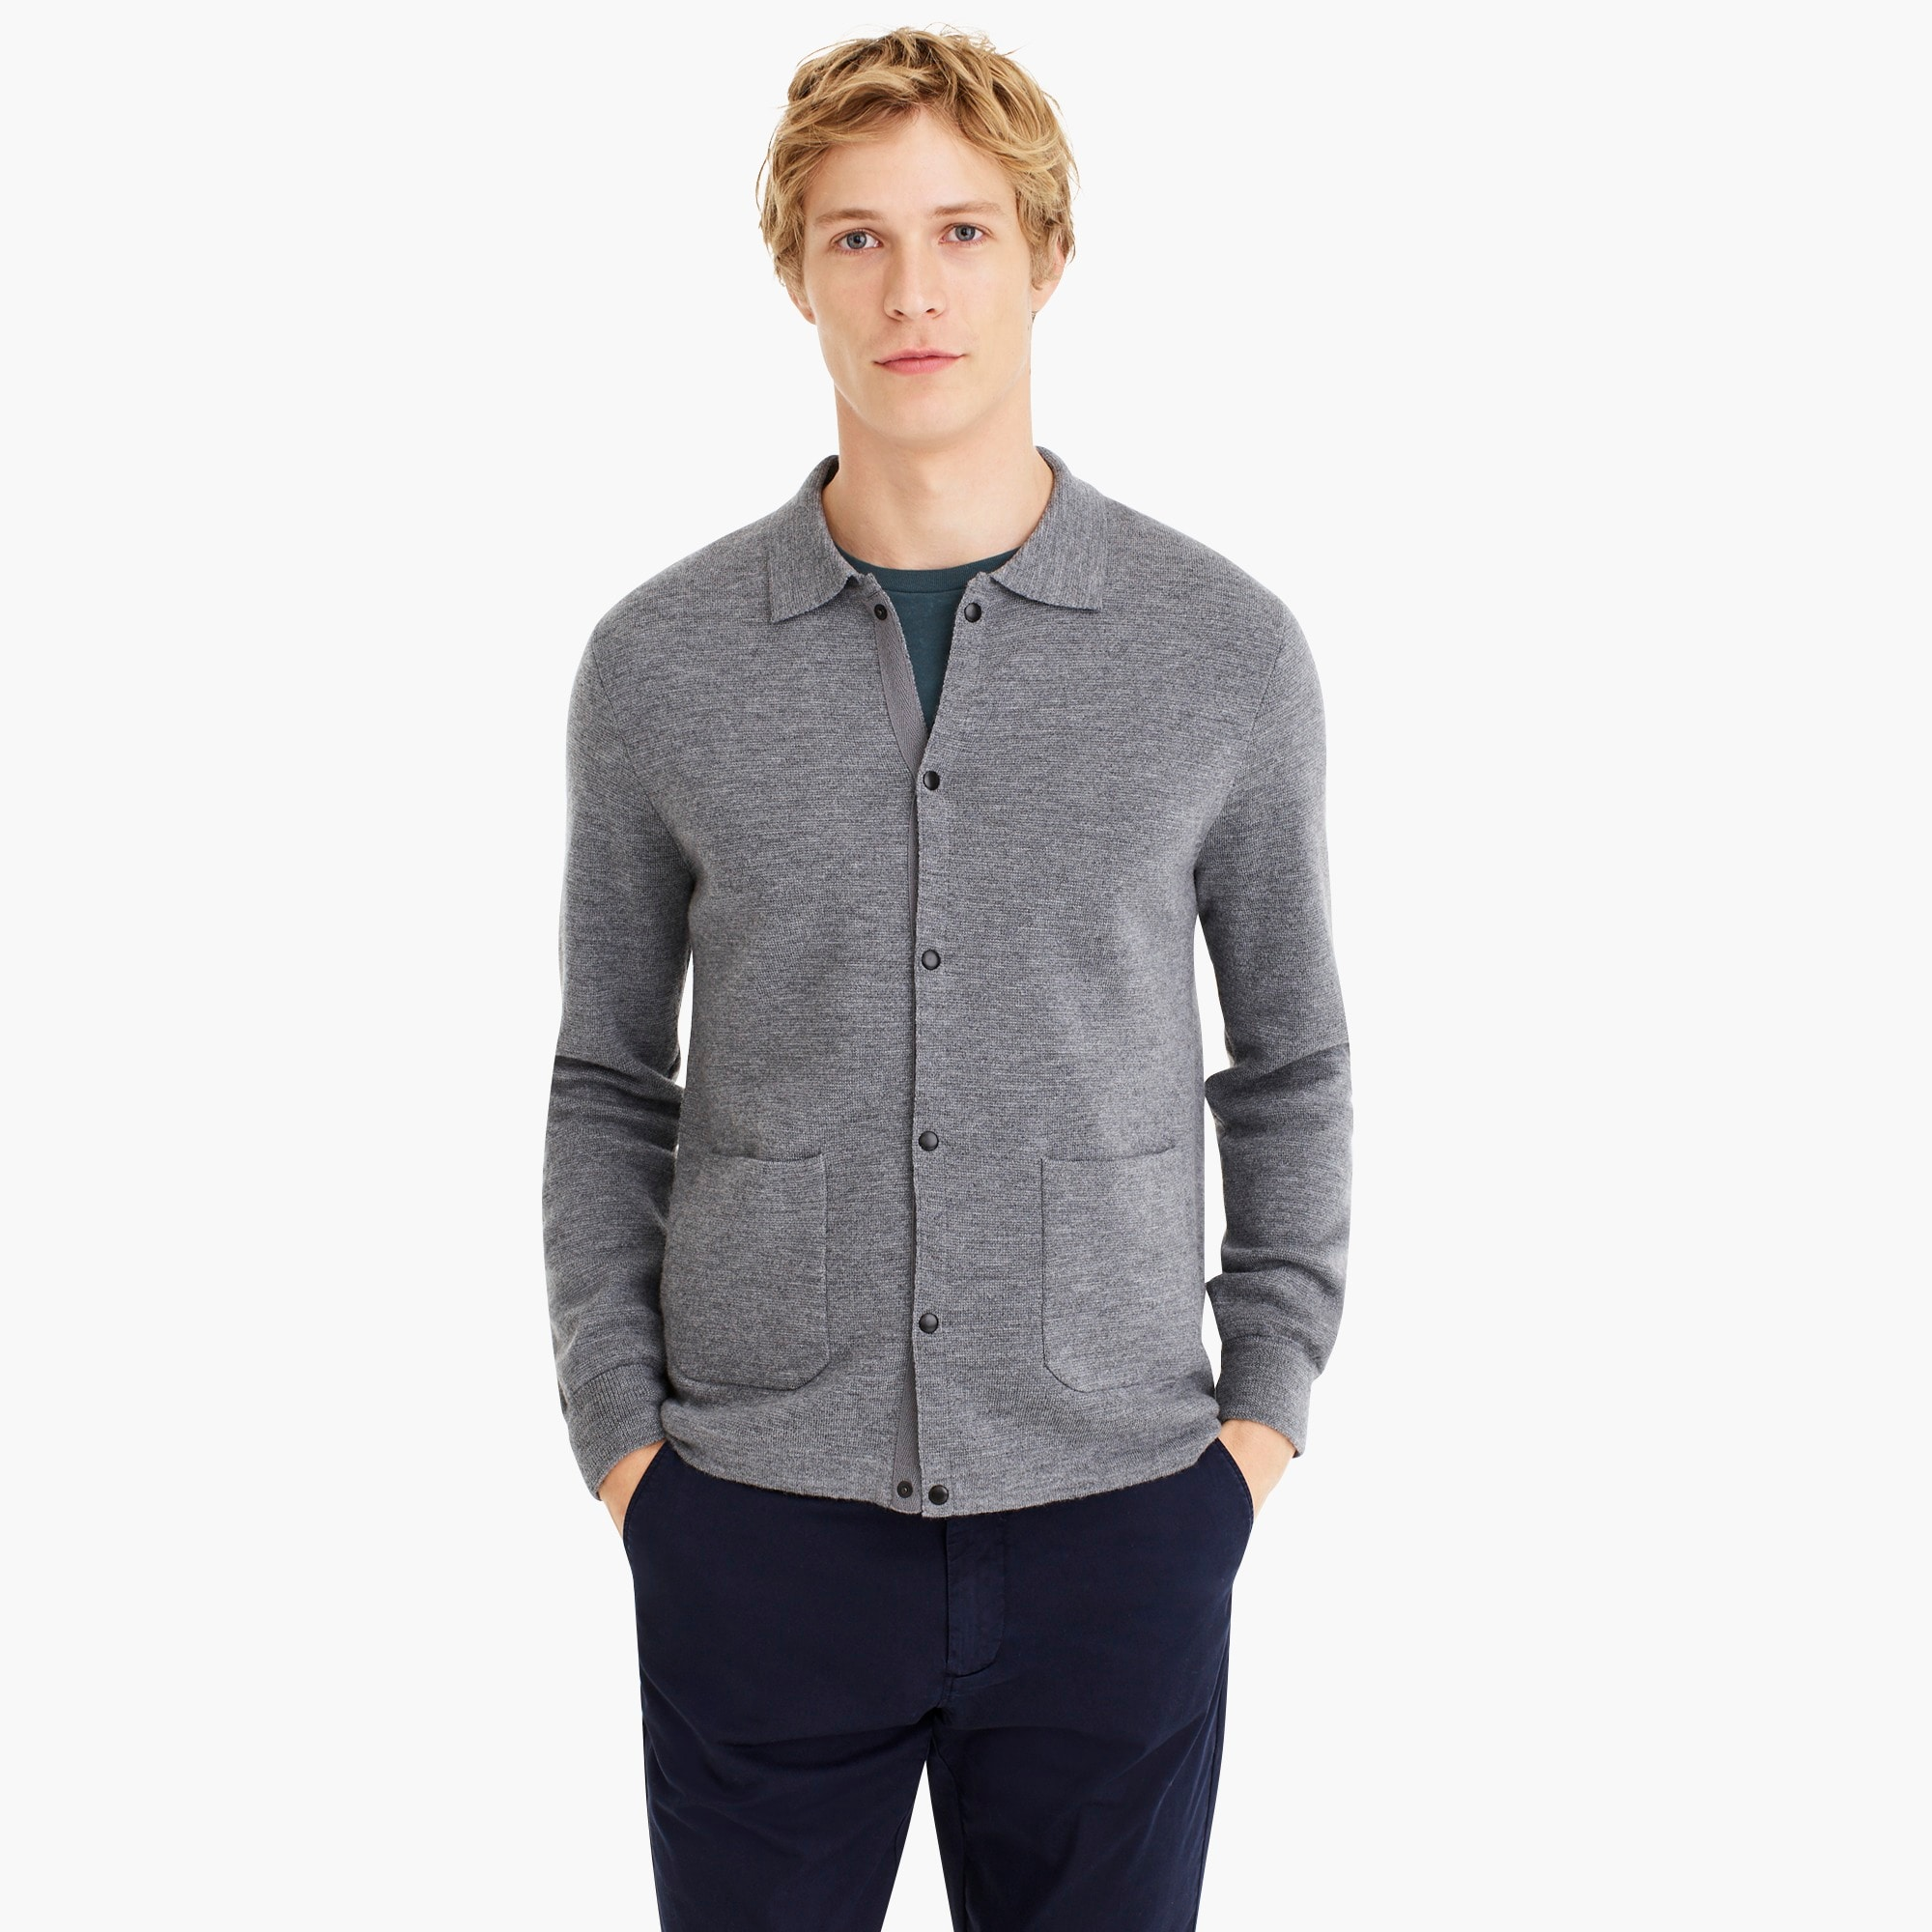 mens Destination merino wool cardigan sweater-jacket